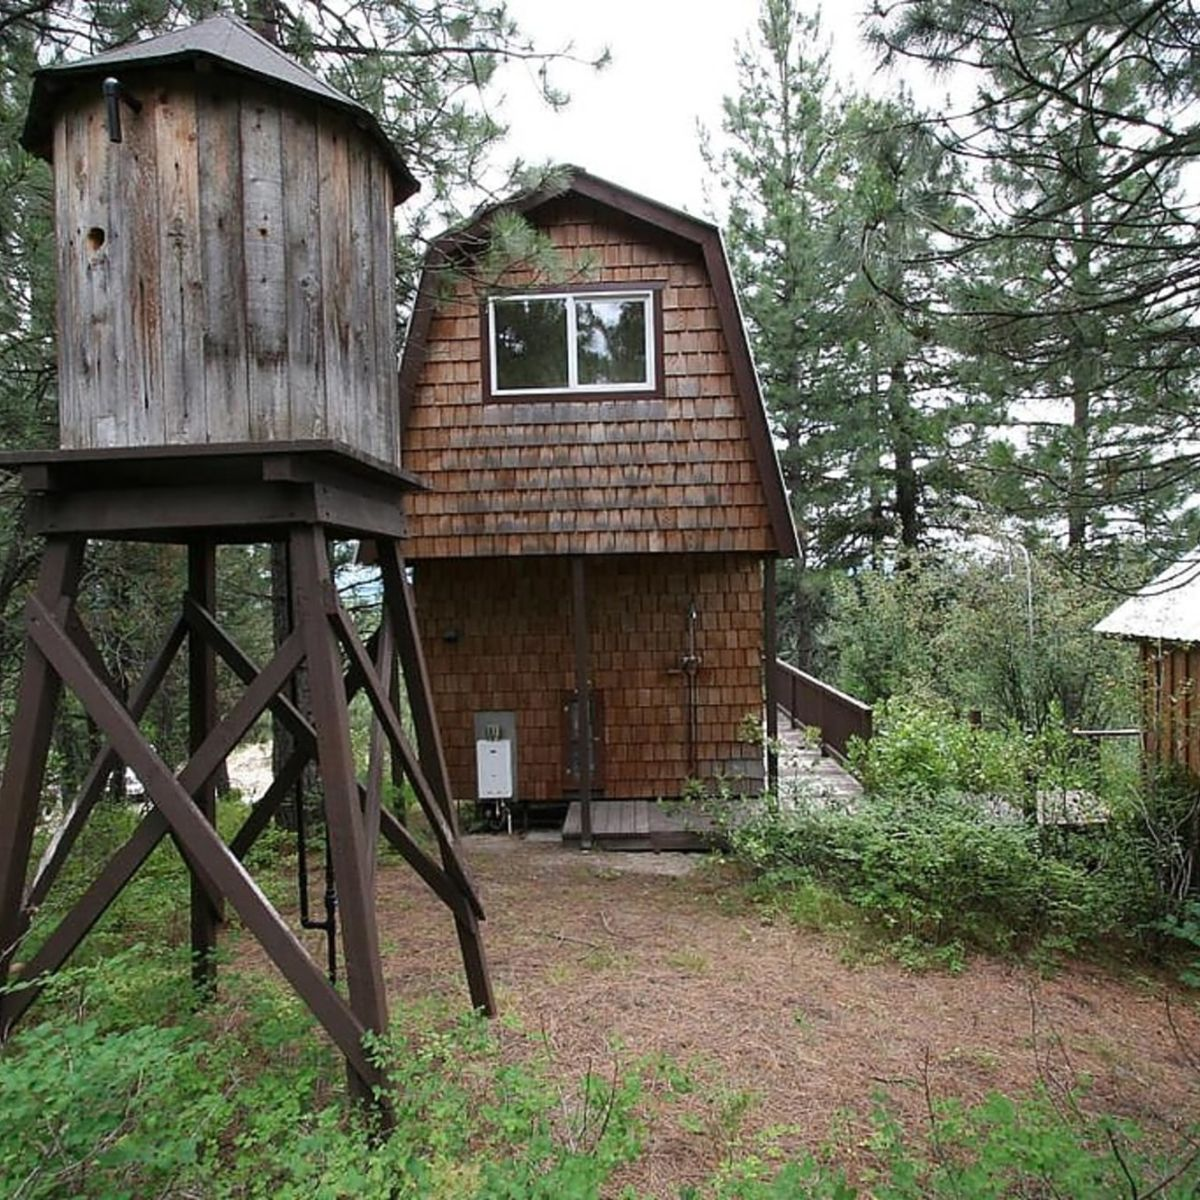 Houses For Rent Listings: Little Off-grid Cabin On 8 Acres